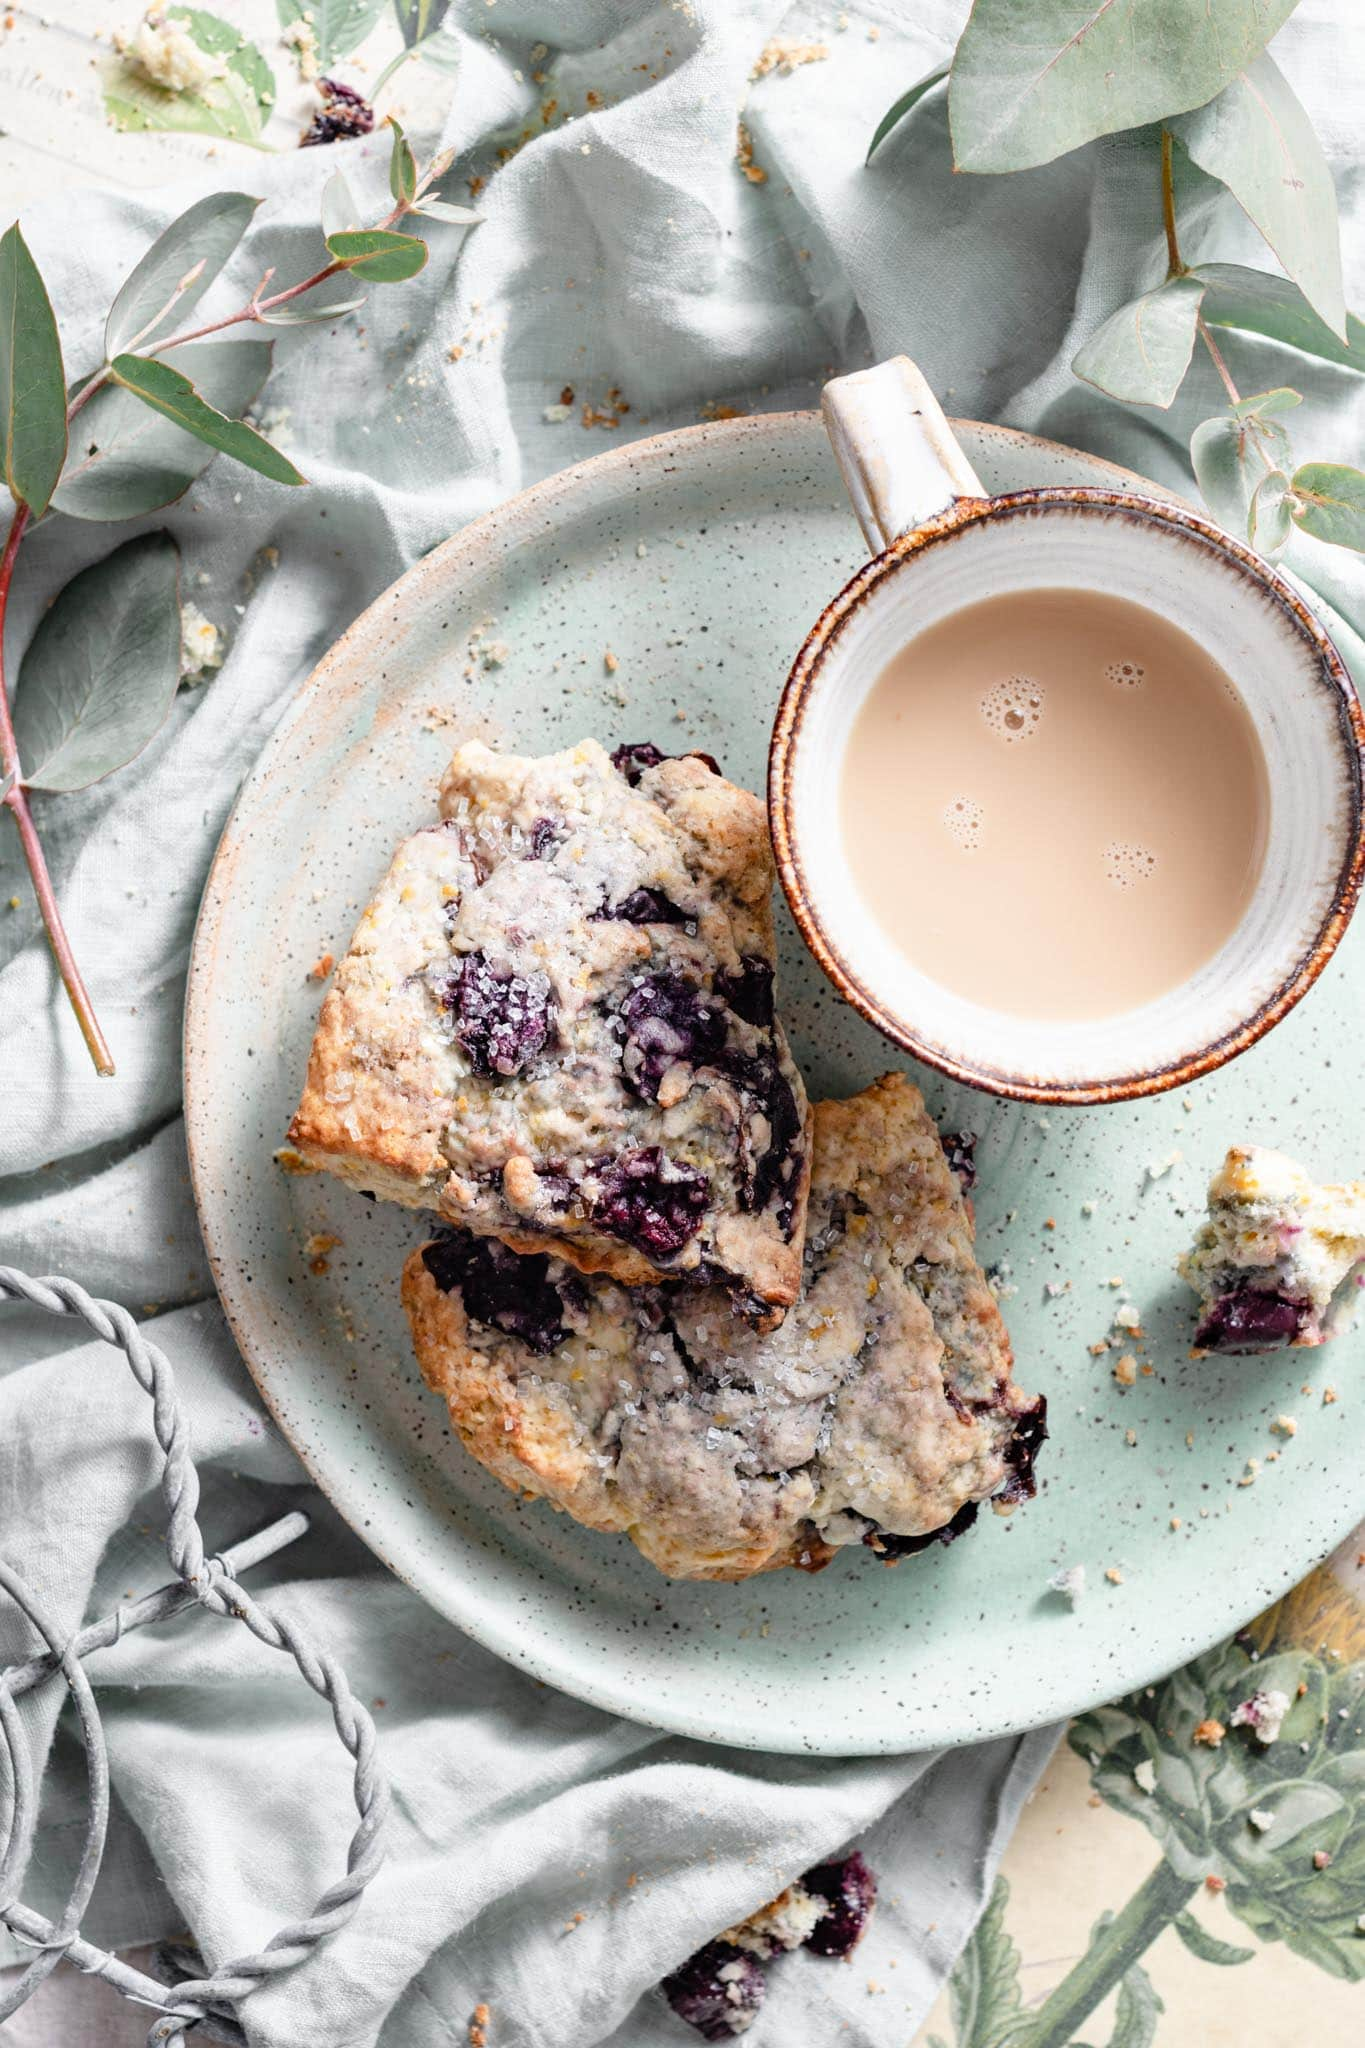 Fresh homemade scones with coffee.